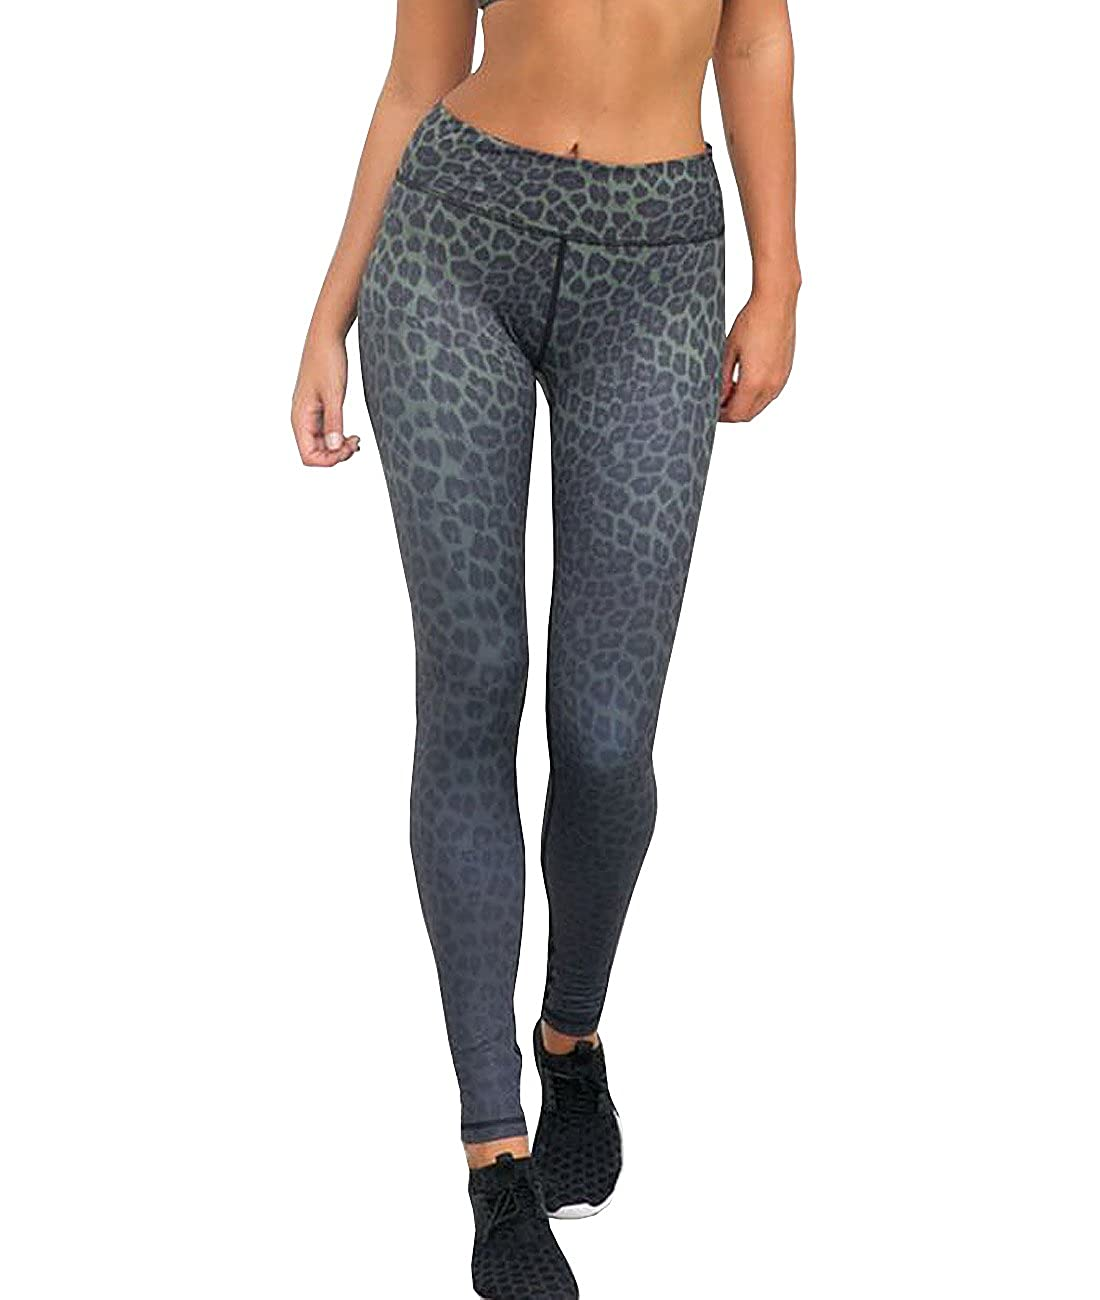 7e335adad269ef Soft breathable fabric made, 4-way strecthy fabric to offer maximum  comfort. Nice fit , make your look great and charming, leopard printed  legging tights, ...